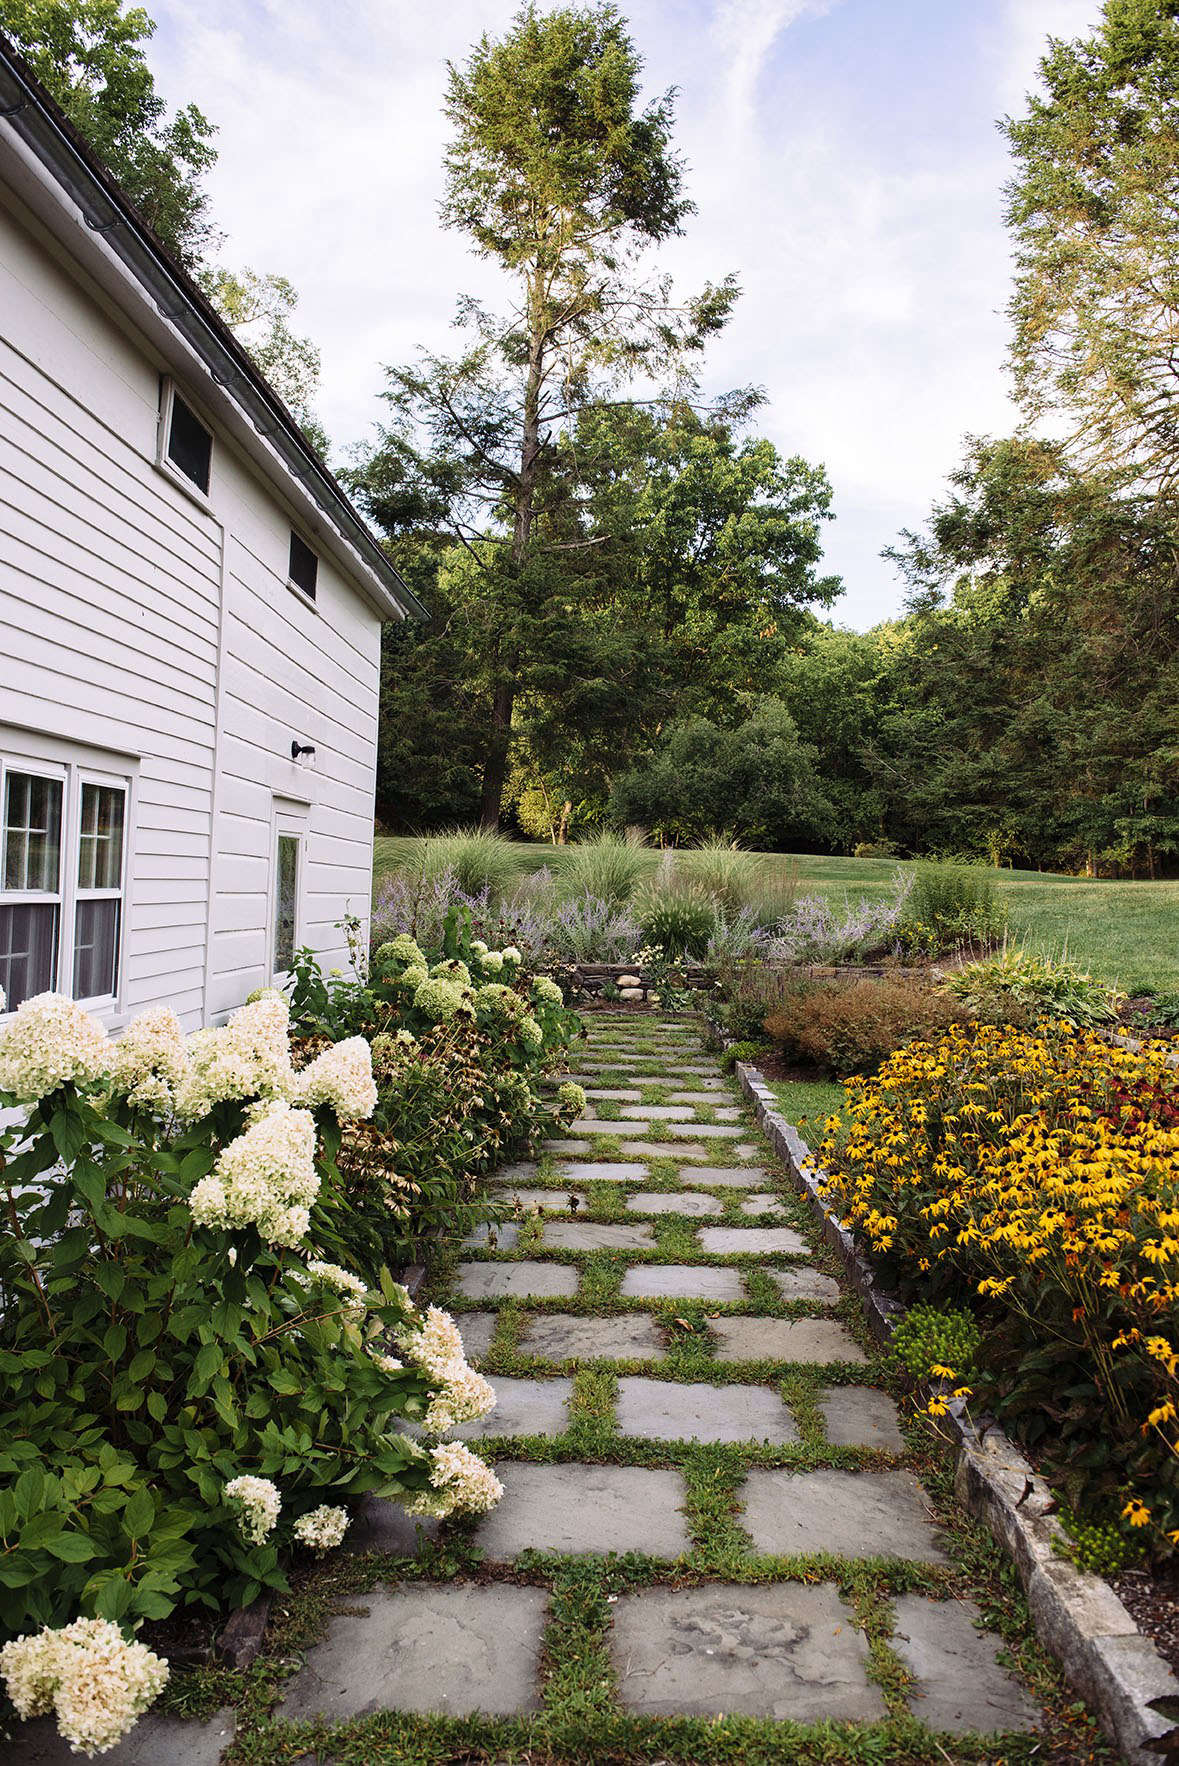 Hydrangeas (L) and yellow Rudbeckia (R) that echoes the vibrancy of the yellow front door edge a path of stone pavers.